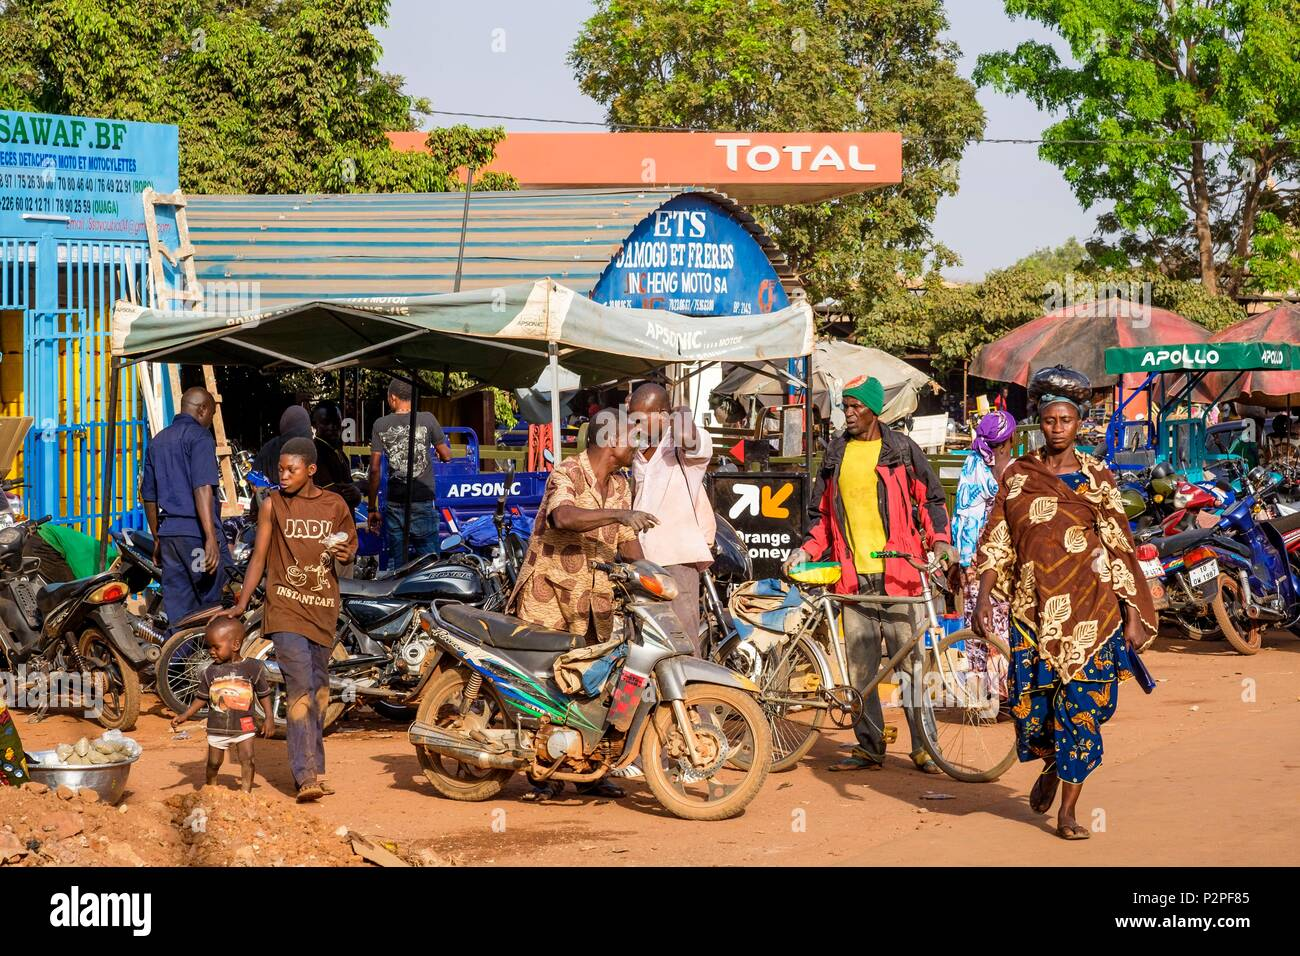 Burkina Faso, Hauts-Bassins region, Bobo-Dioulasso Stock Photo